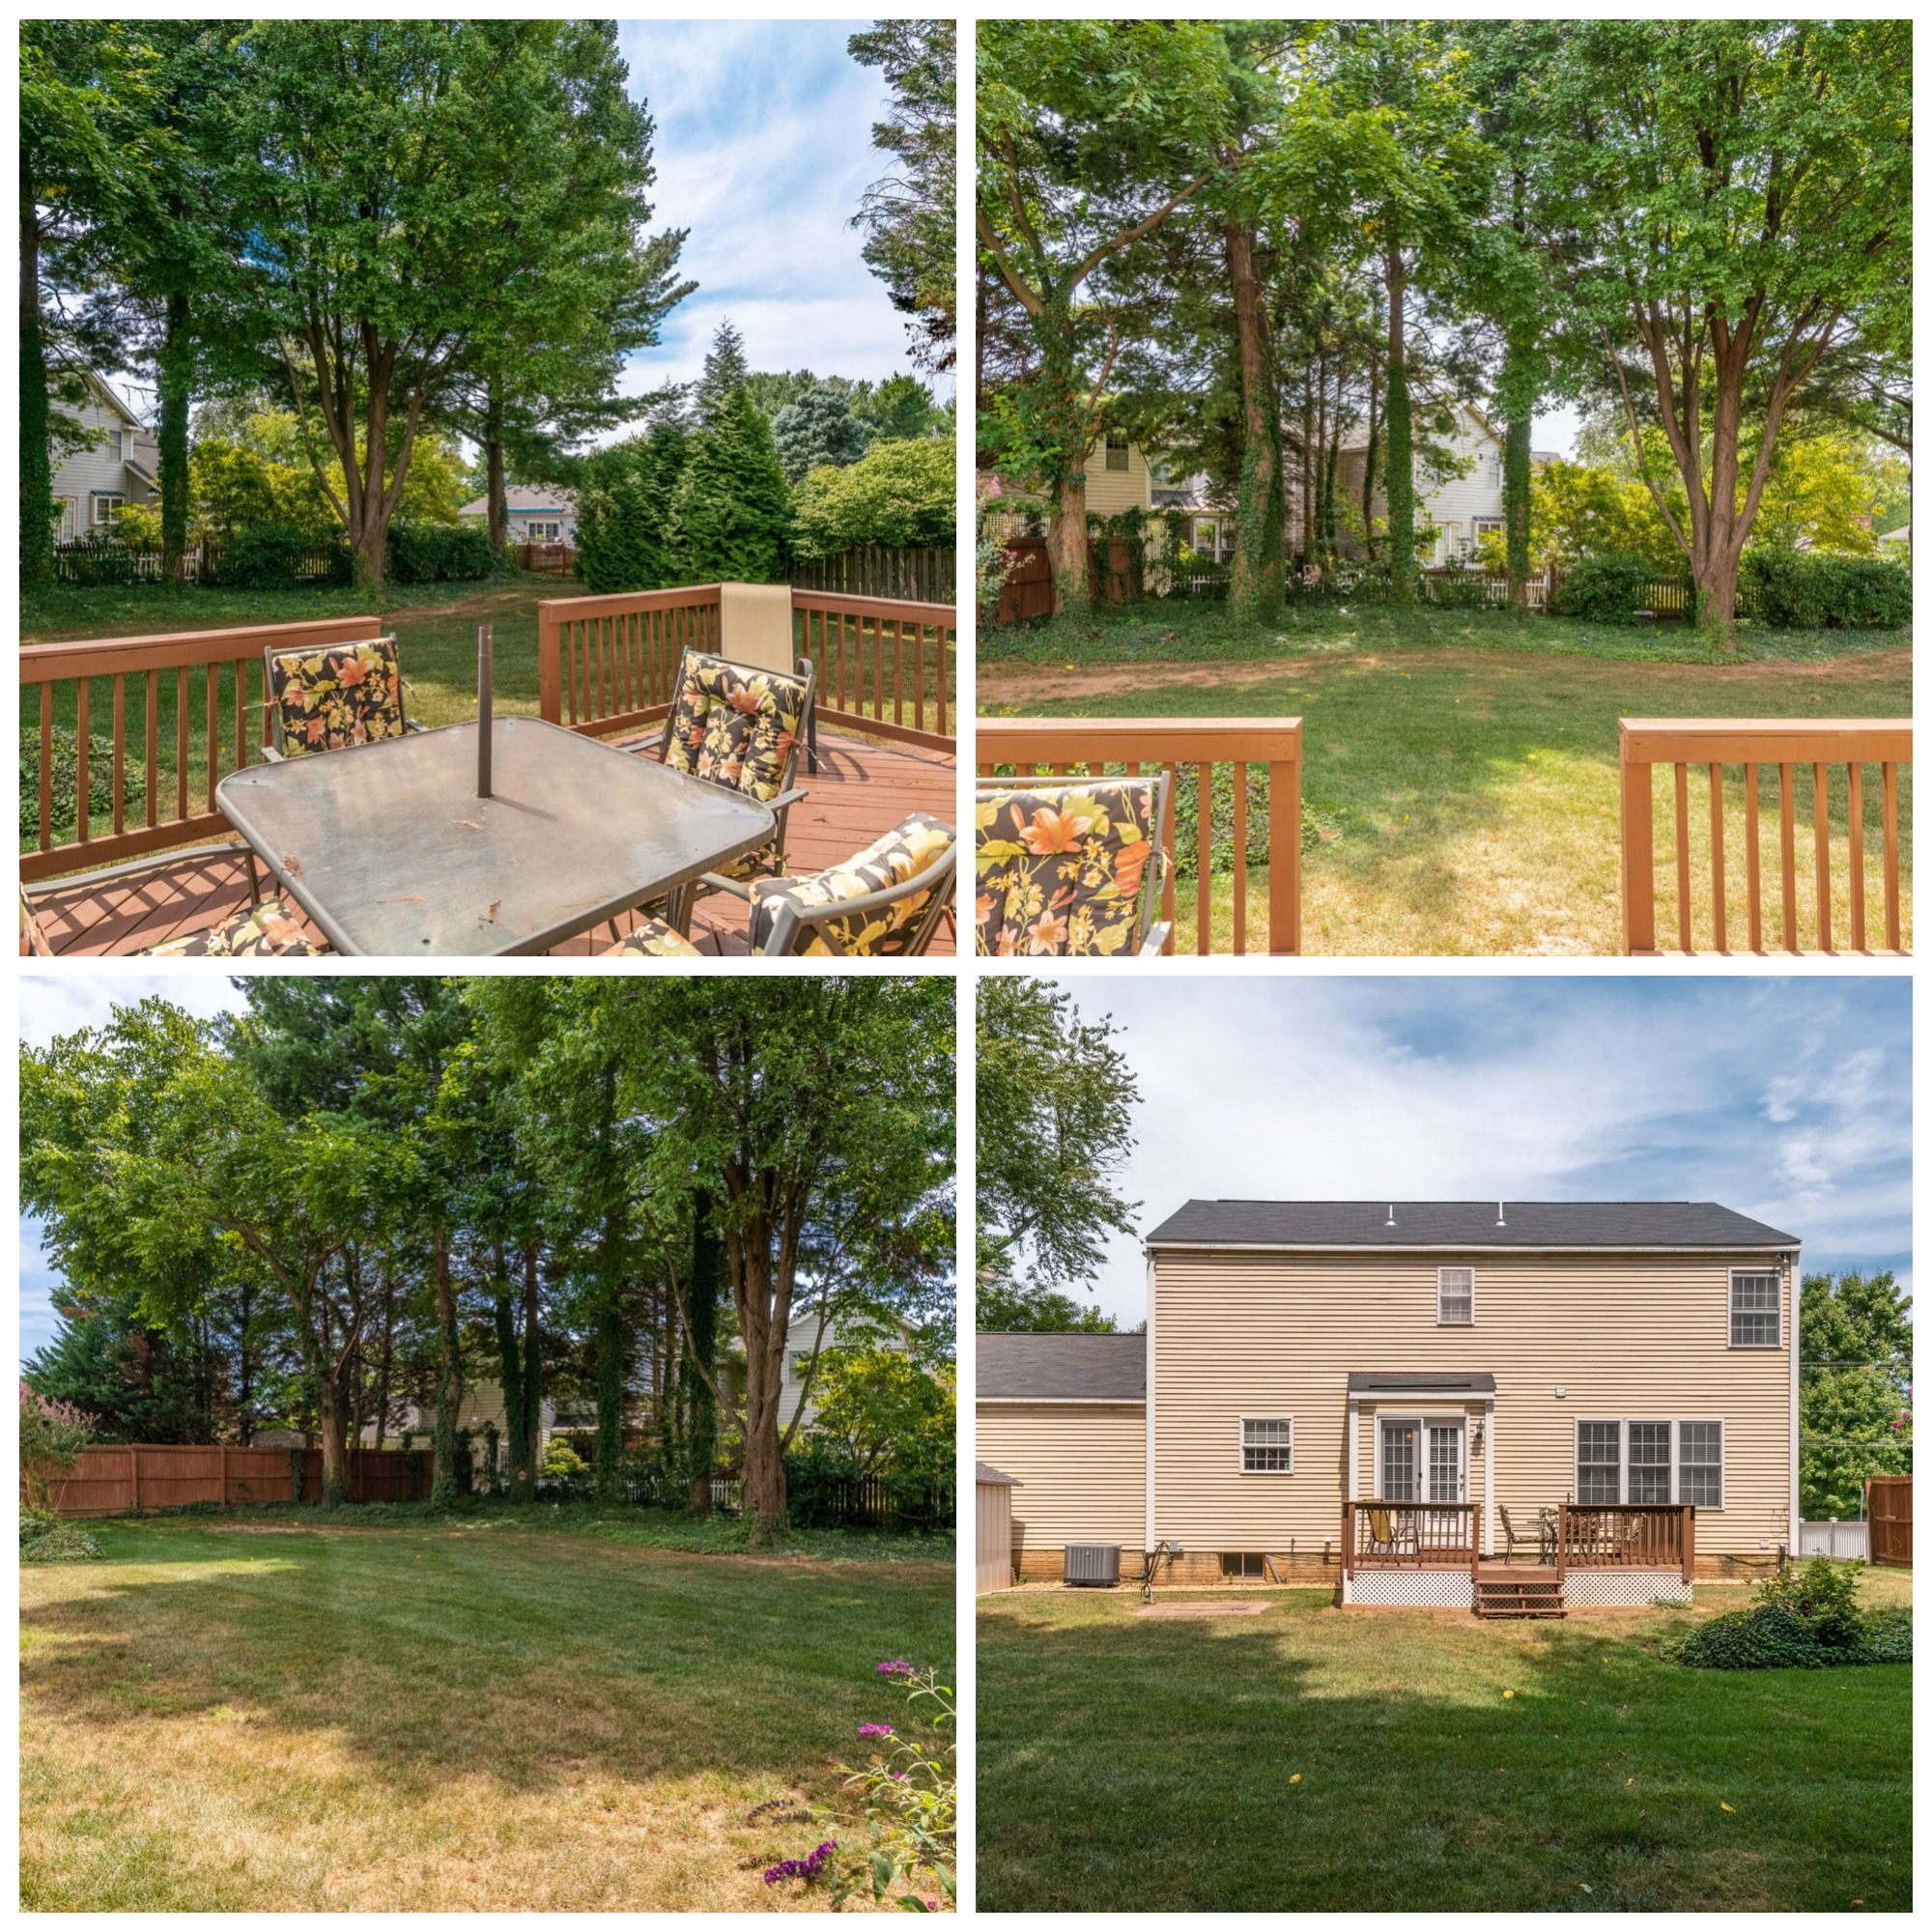 327 Old Waterford Rd NW, Leesburg - Back Yard